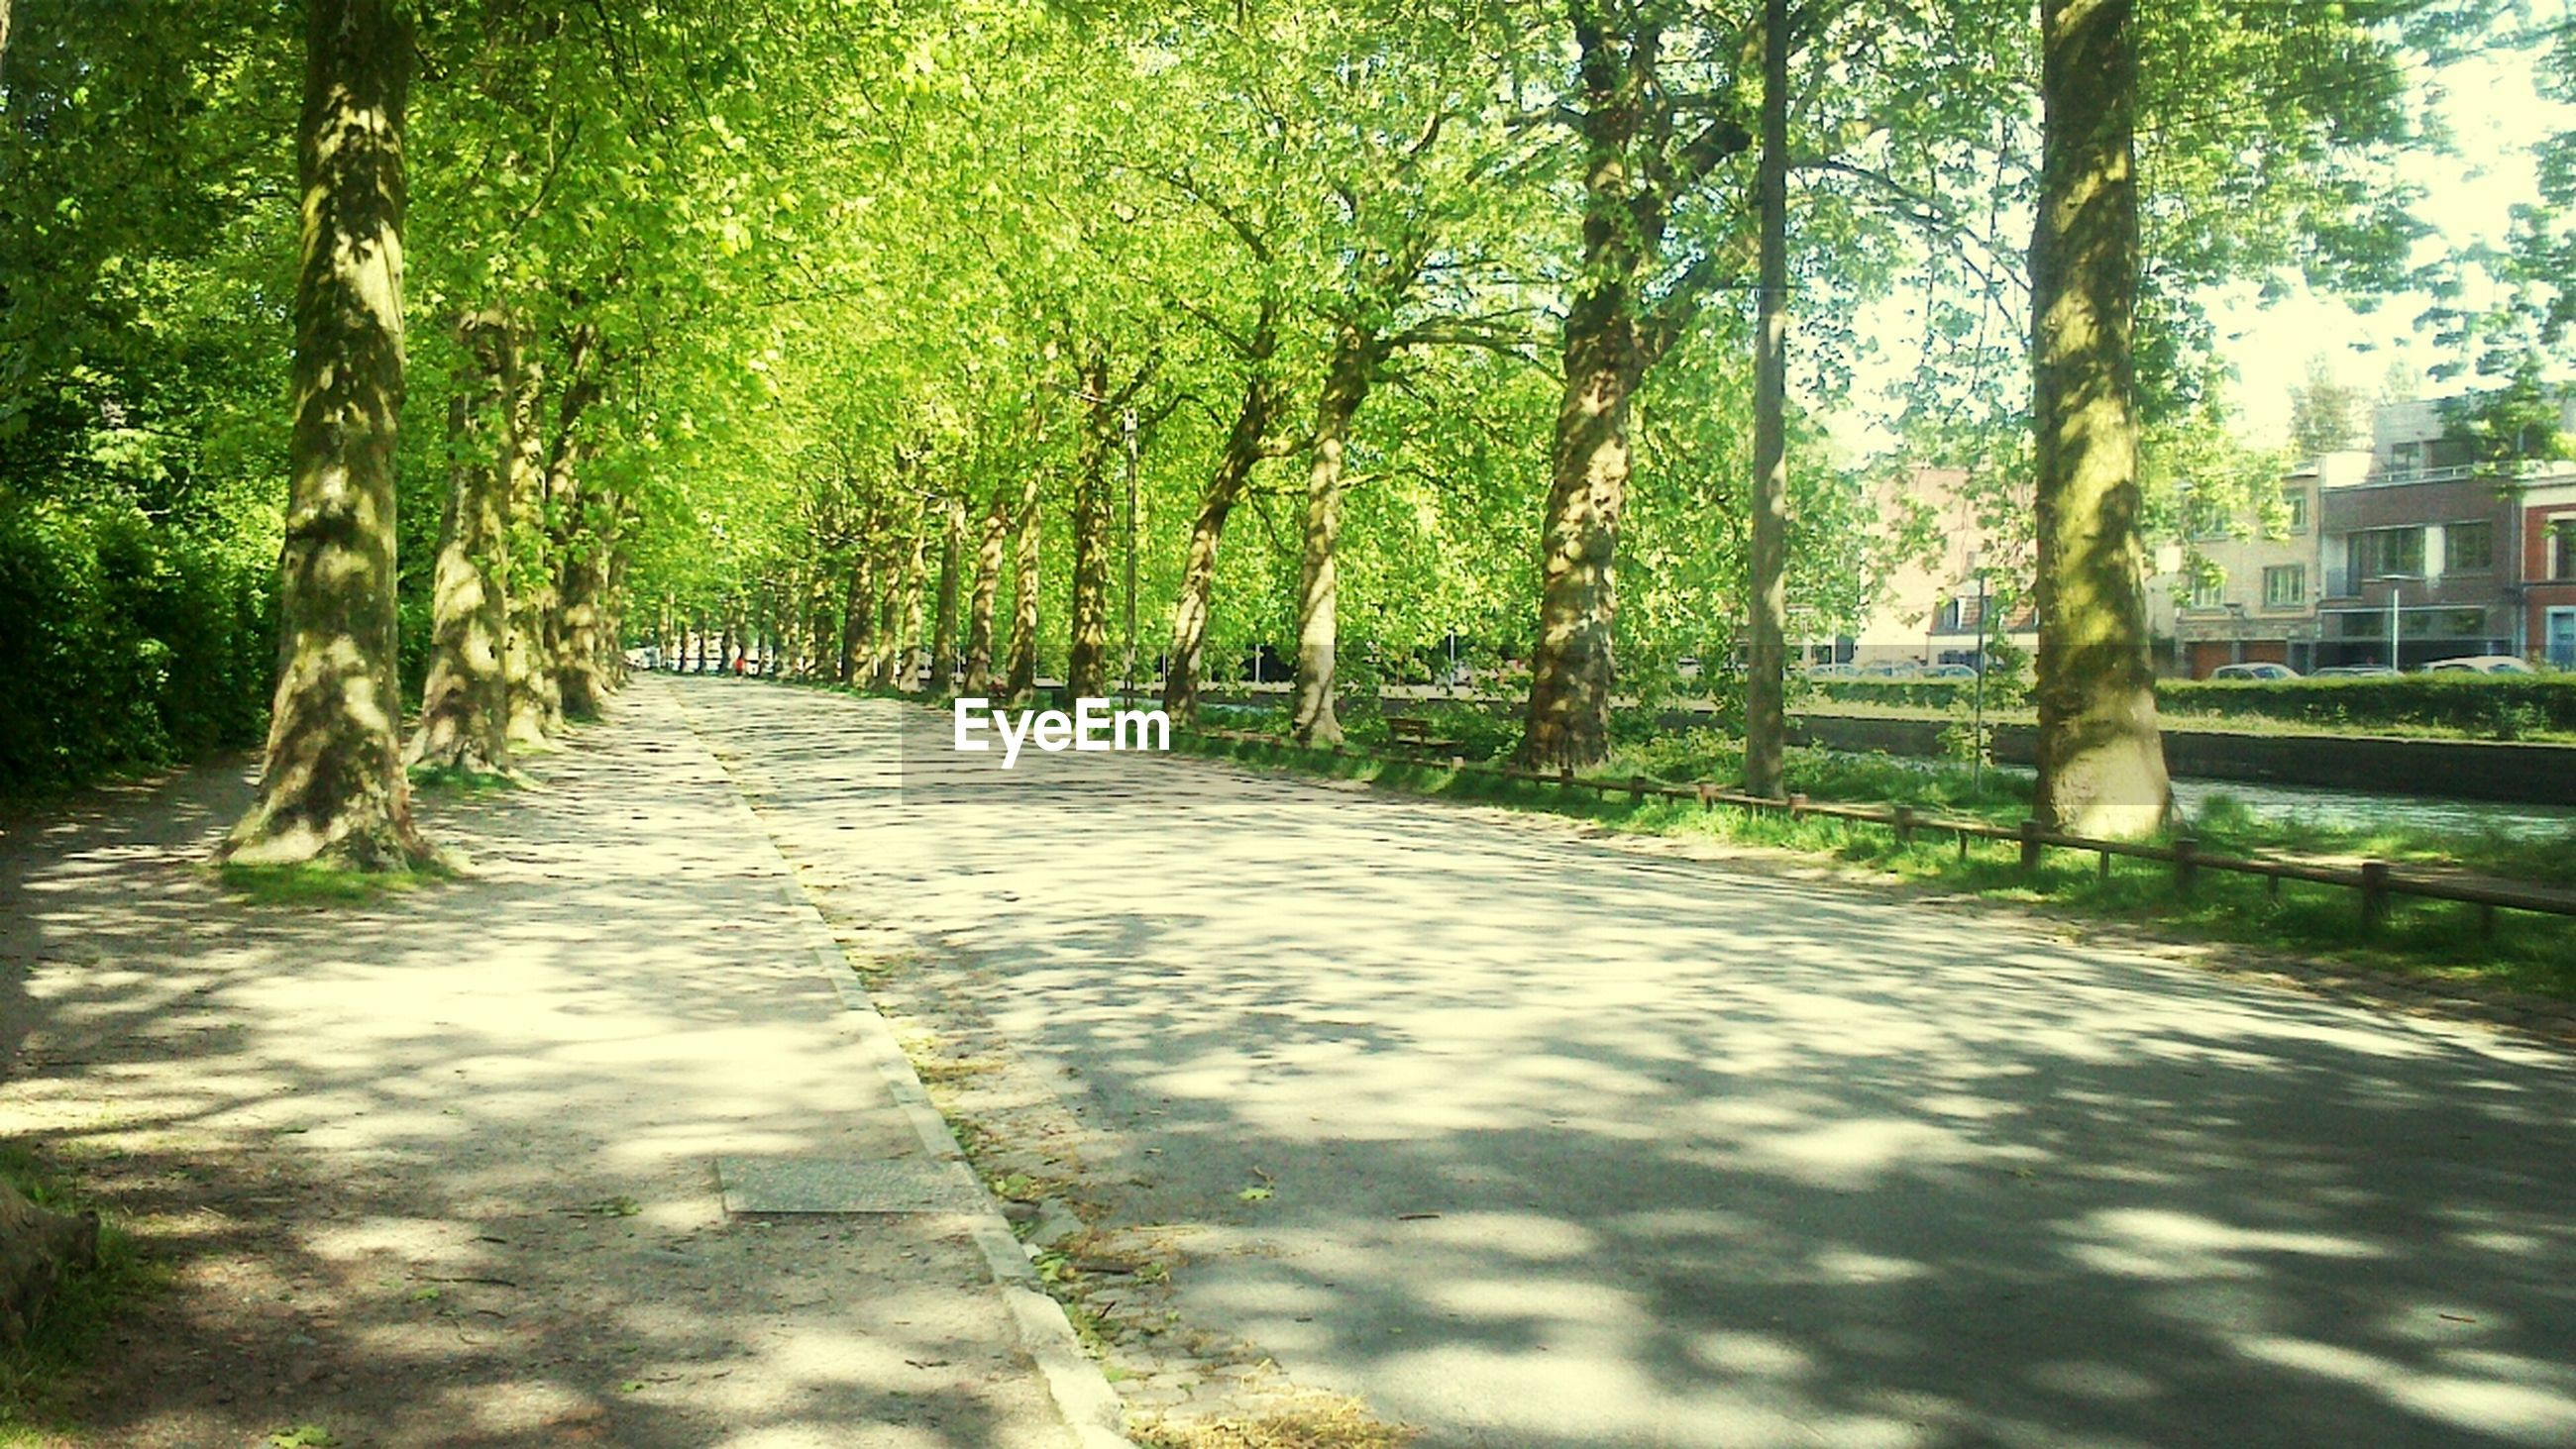 tree, the way forward, treelined, diminishing perspective, footpath, growth, vanishing point, road, tranquility, green color, street, nature, tree trunk, pathway, shadow, park - man made space, transportation, sunlight, dirt road, walkway